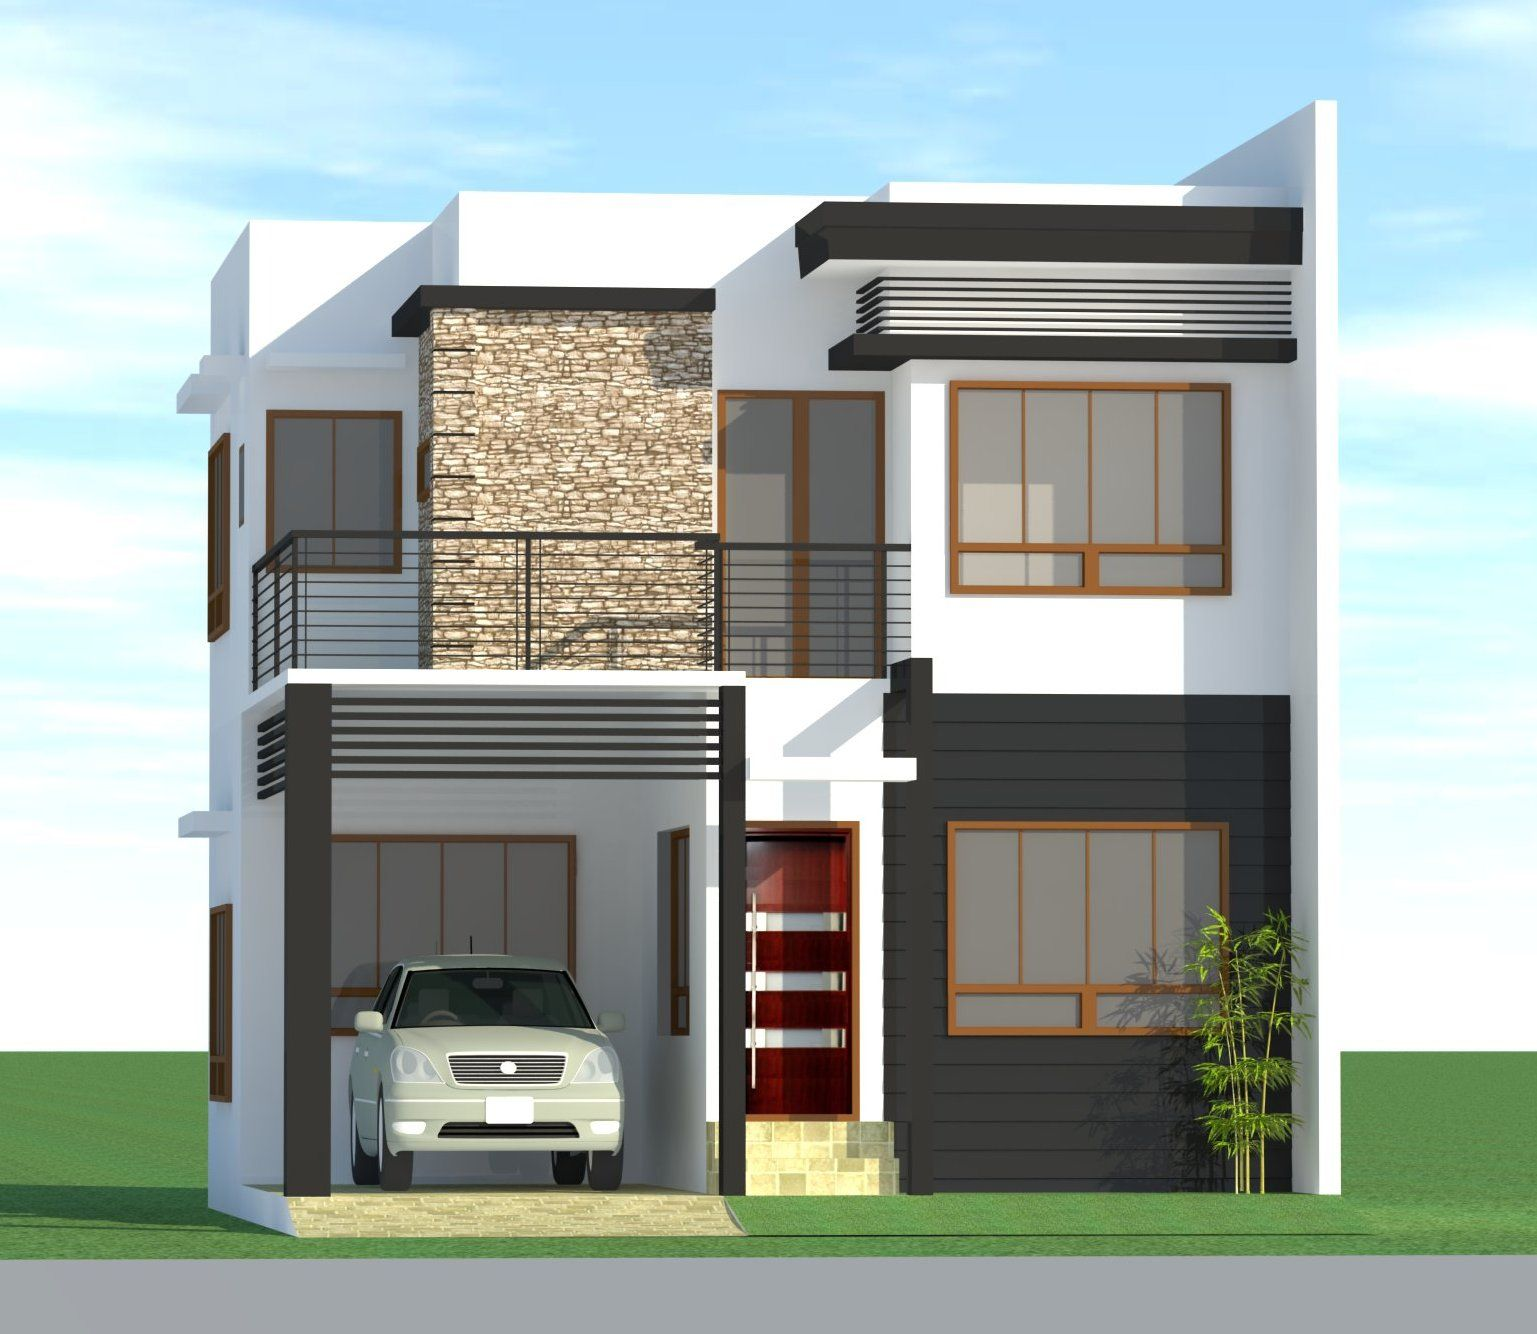 Philippines house design images 3 home design ideas for Philippine houses design pictures